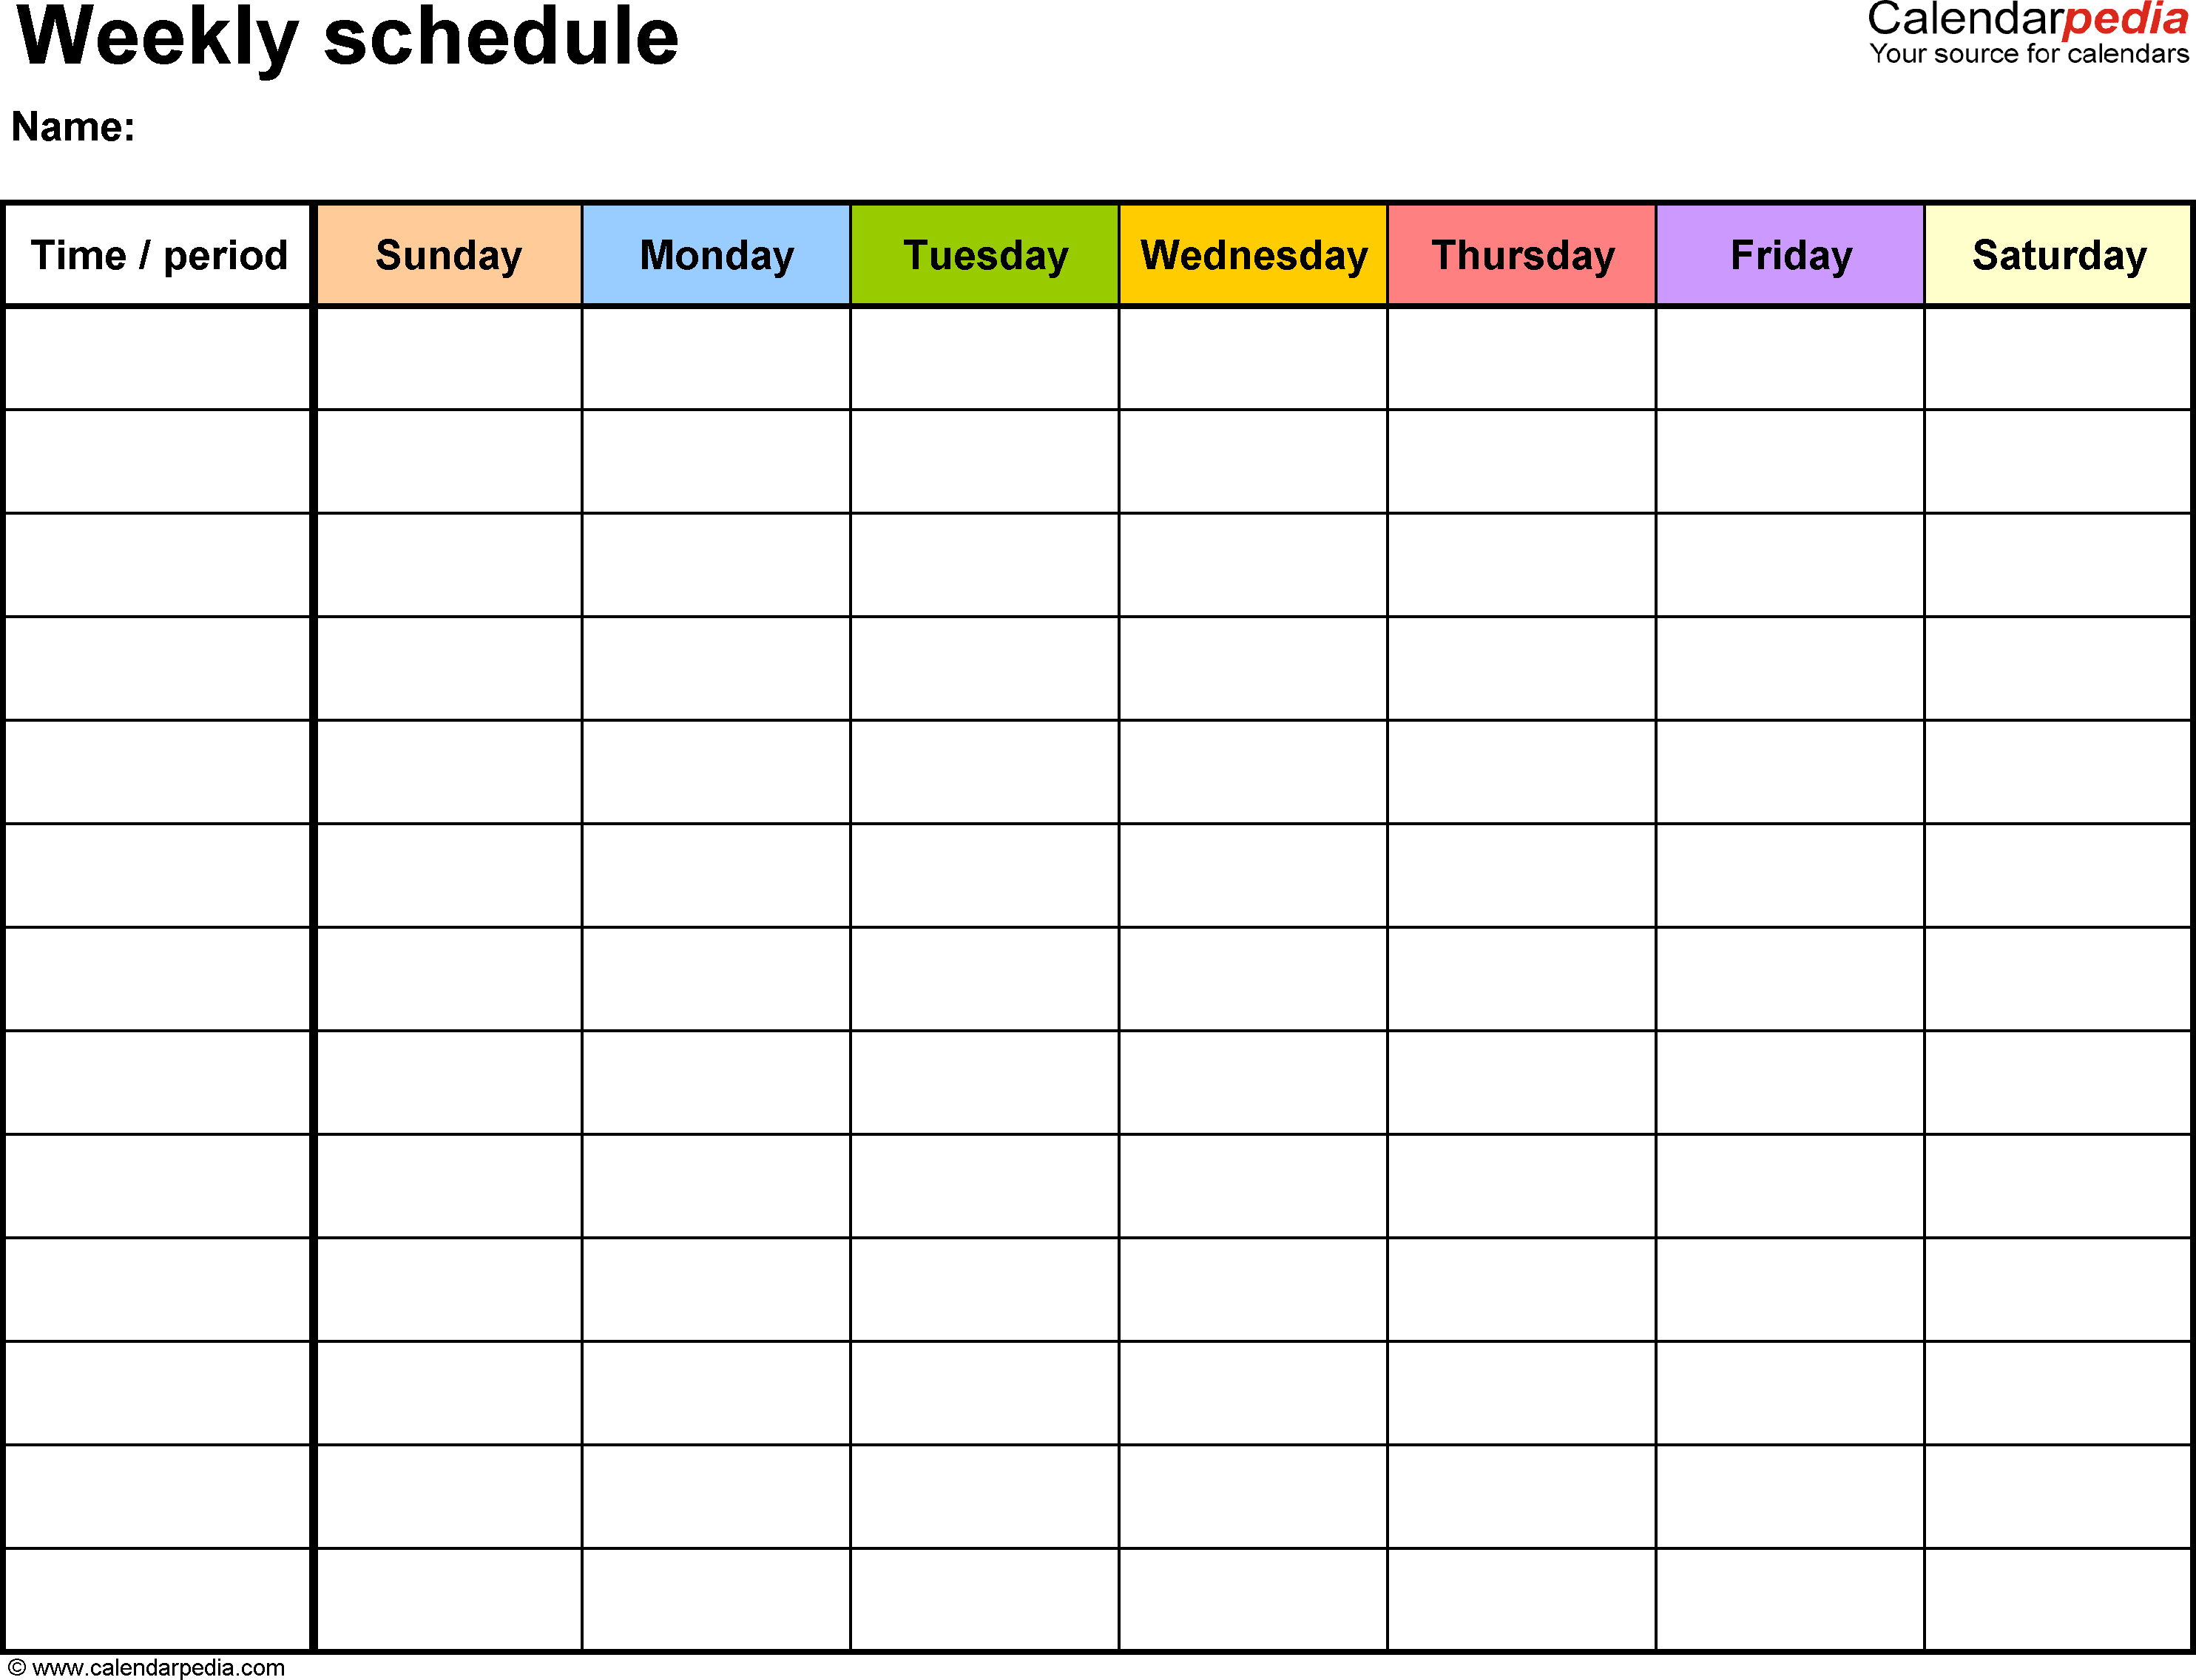 Free Weekly Schedule Templates For Excel - 18 Templates with regard to 2 Week Schedule Template Mon- Sunday